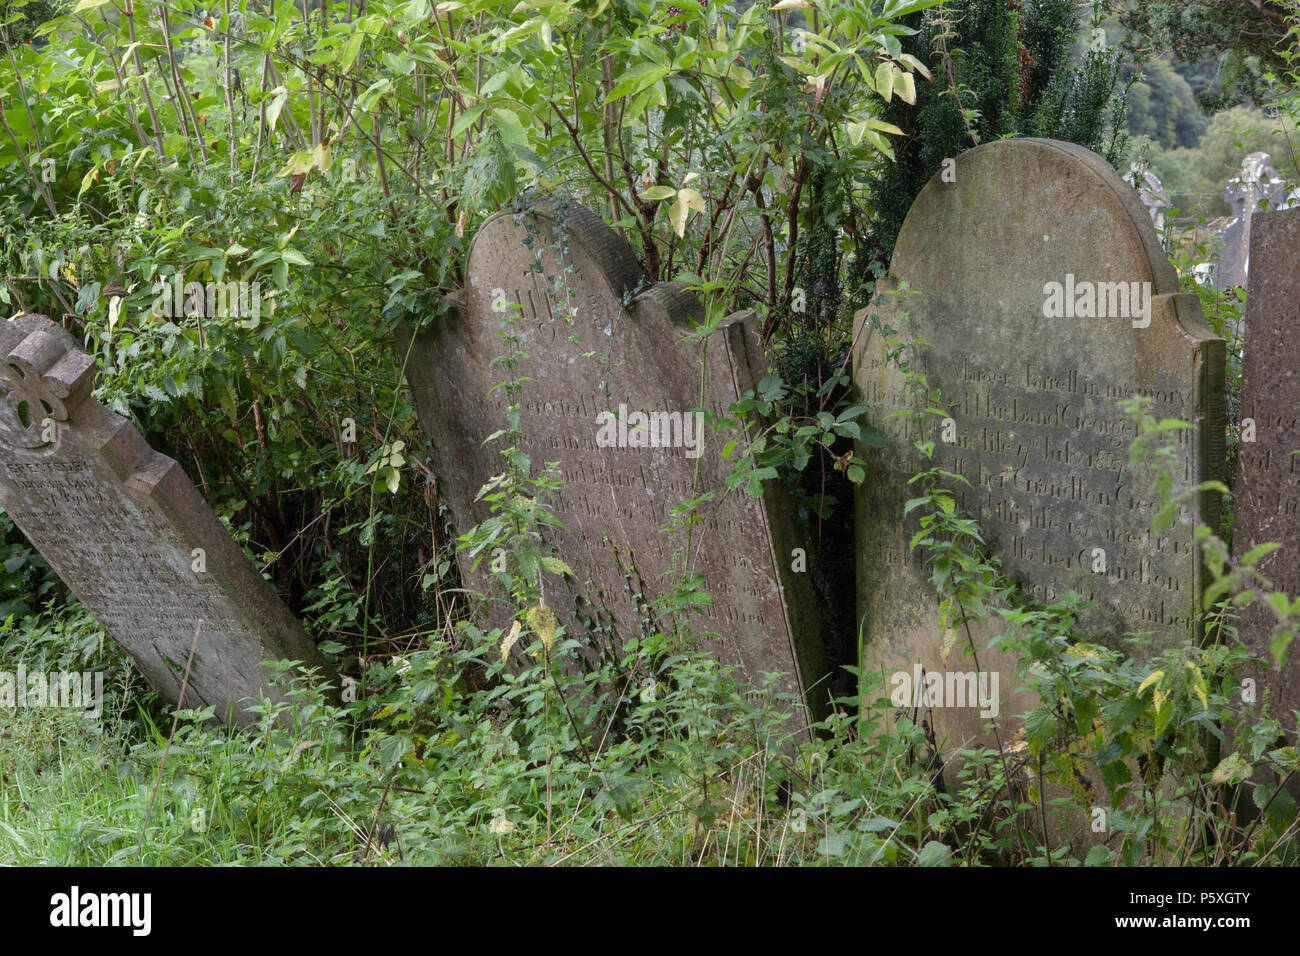 Overgrown gravestones at Glendalough Monastic Site in County Wicklow, Ireland - Stock Image